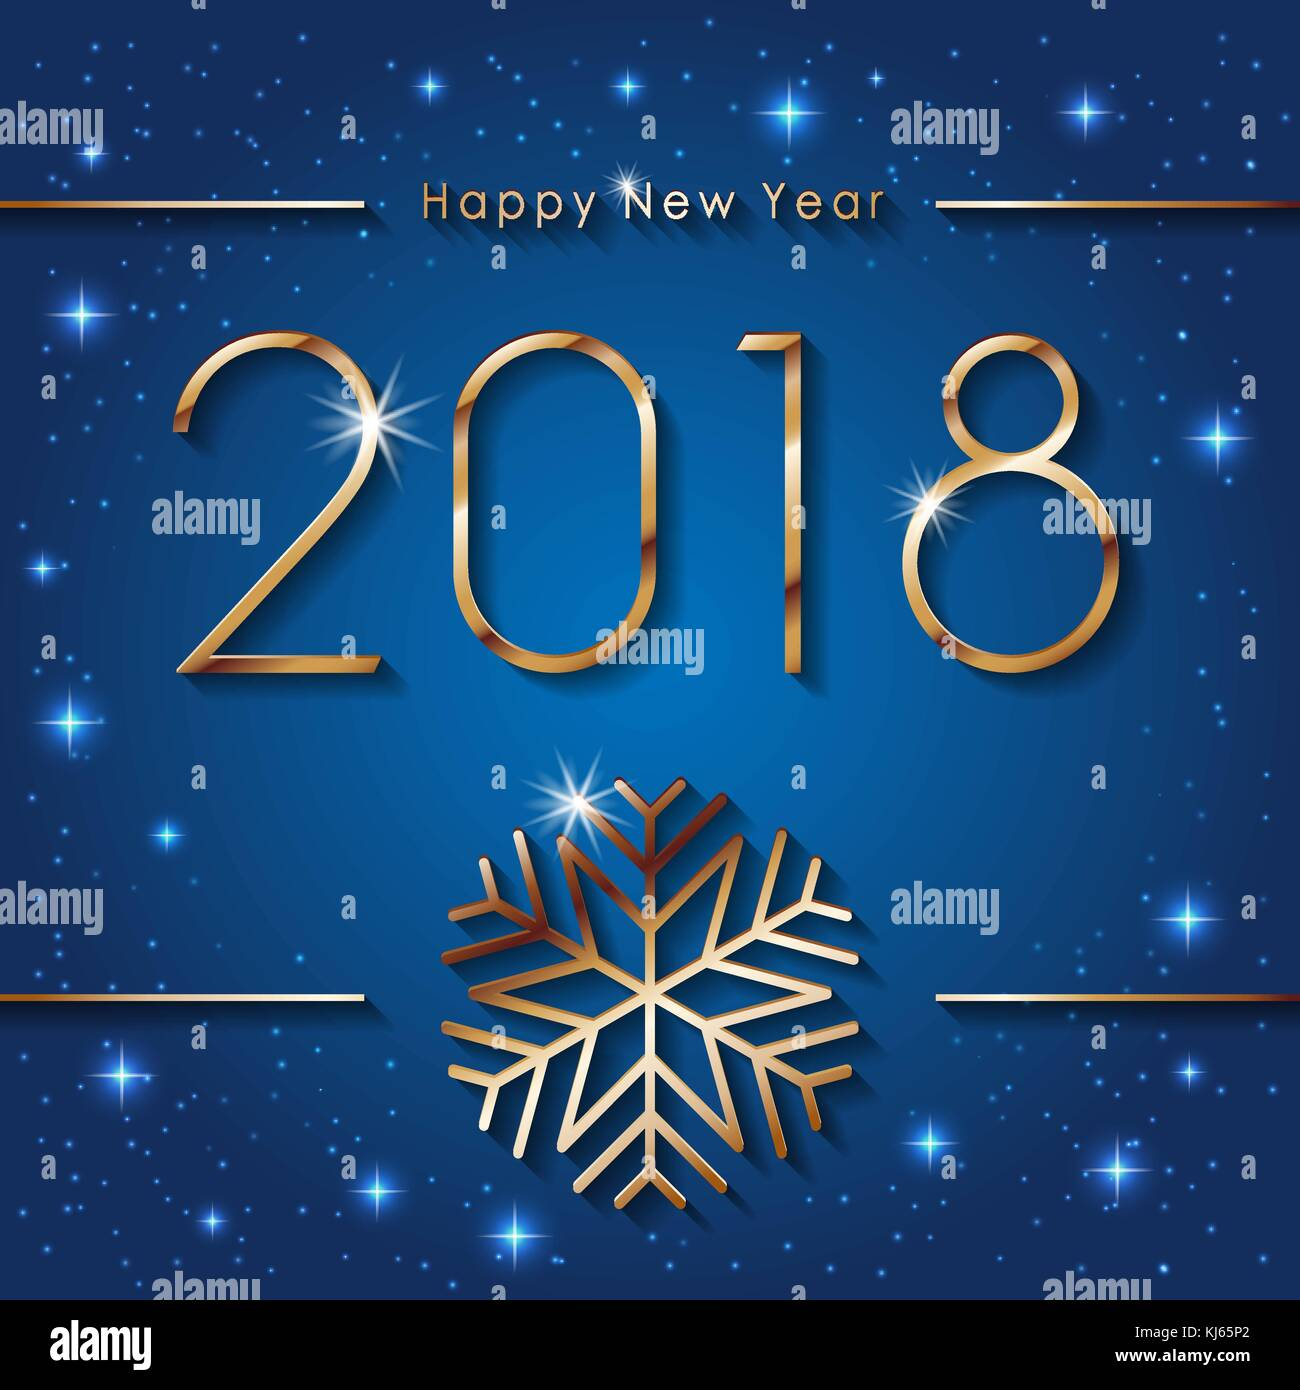 Seasons greetings banner stock photos seasons greetings banner happy new 2018 year seasons greetings banner with golden snowflake colorful winter background kristyandbryce Choice Image